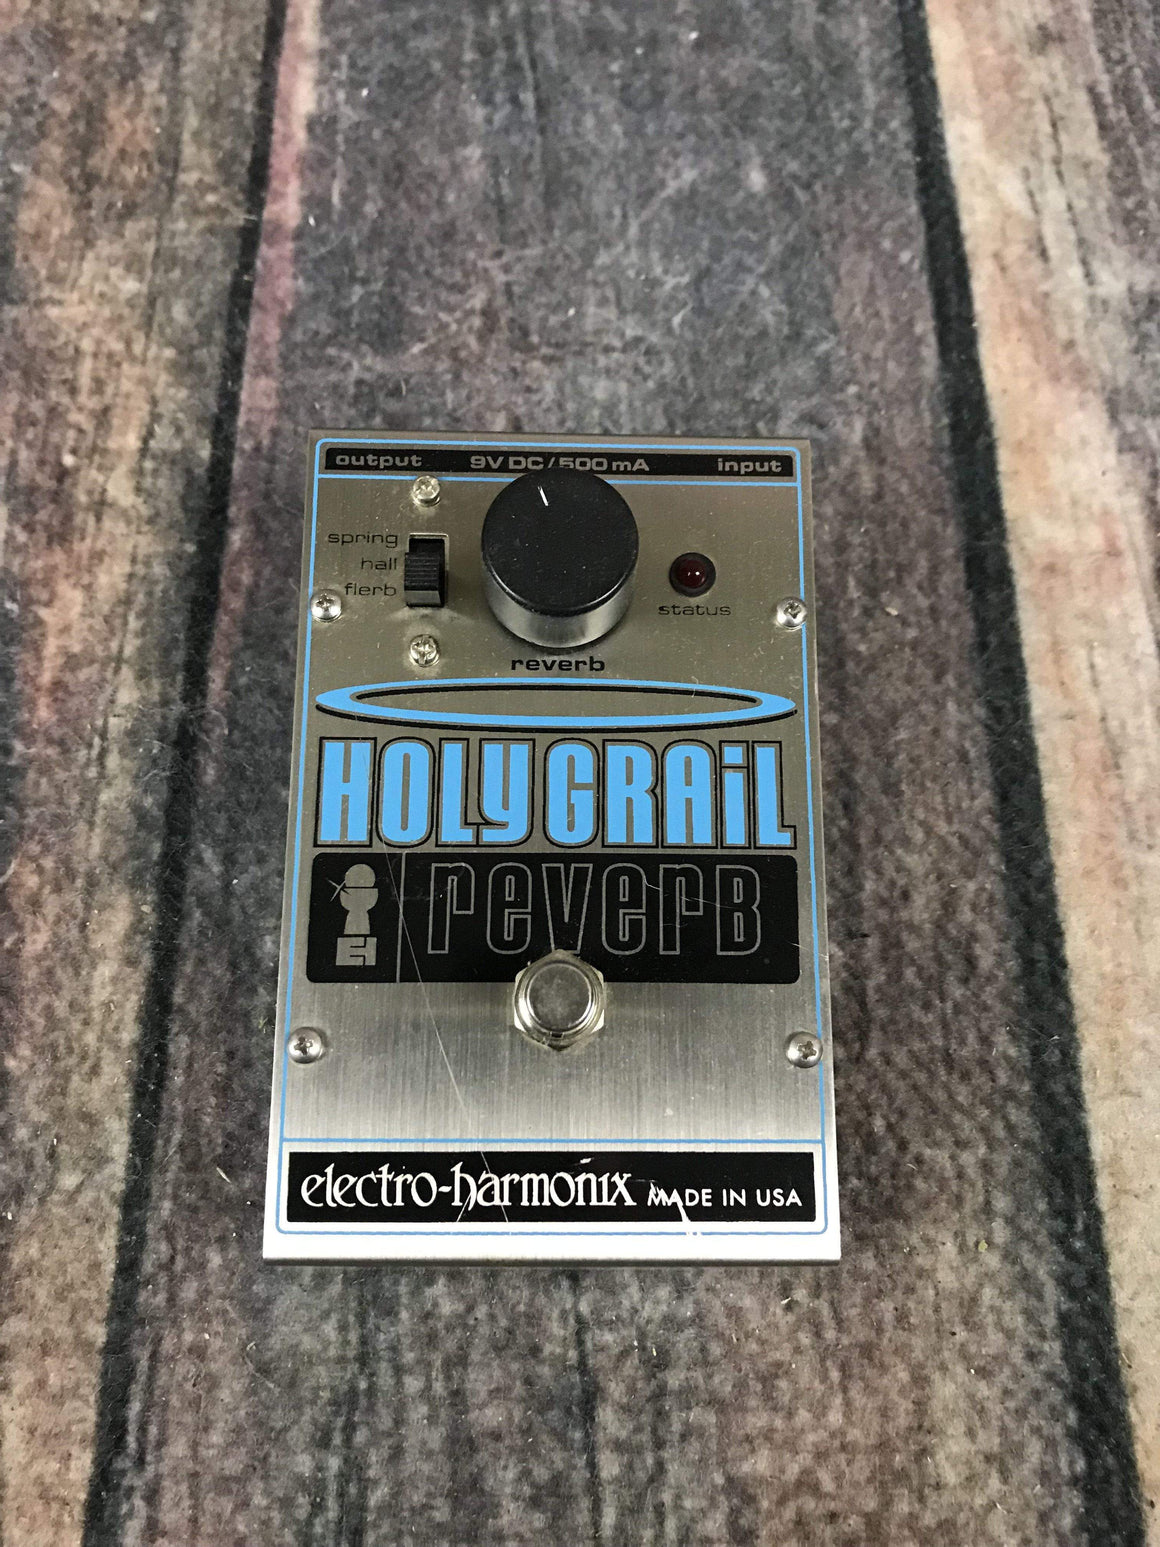 electro-harmonix pedal Used Electro-Harmonix EHX Holy Grail Reverb with Box